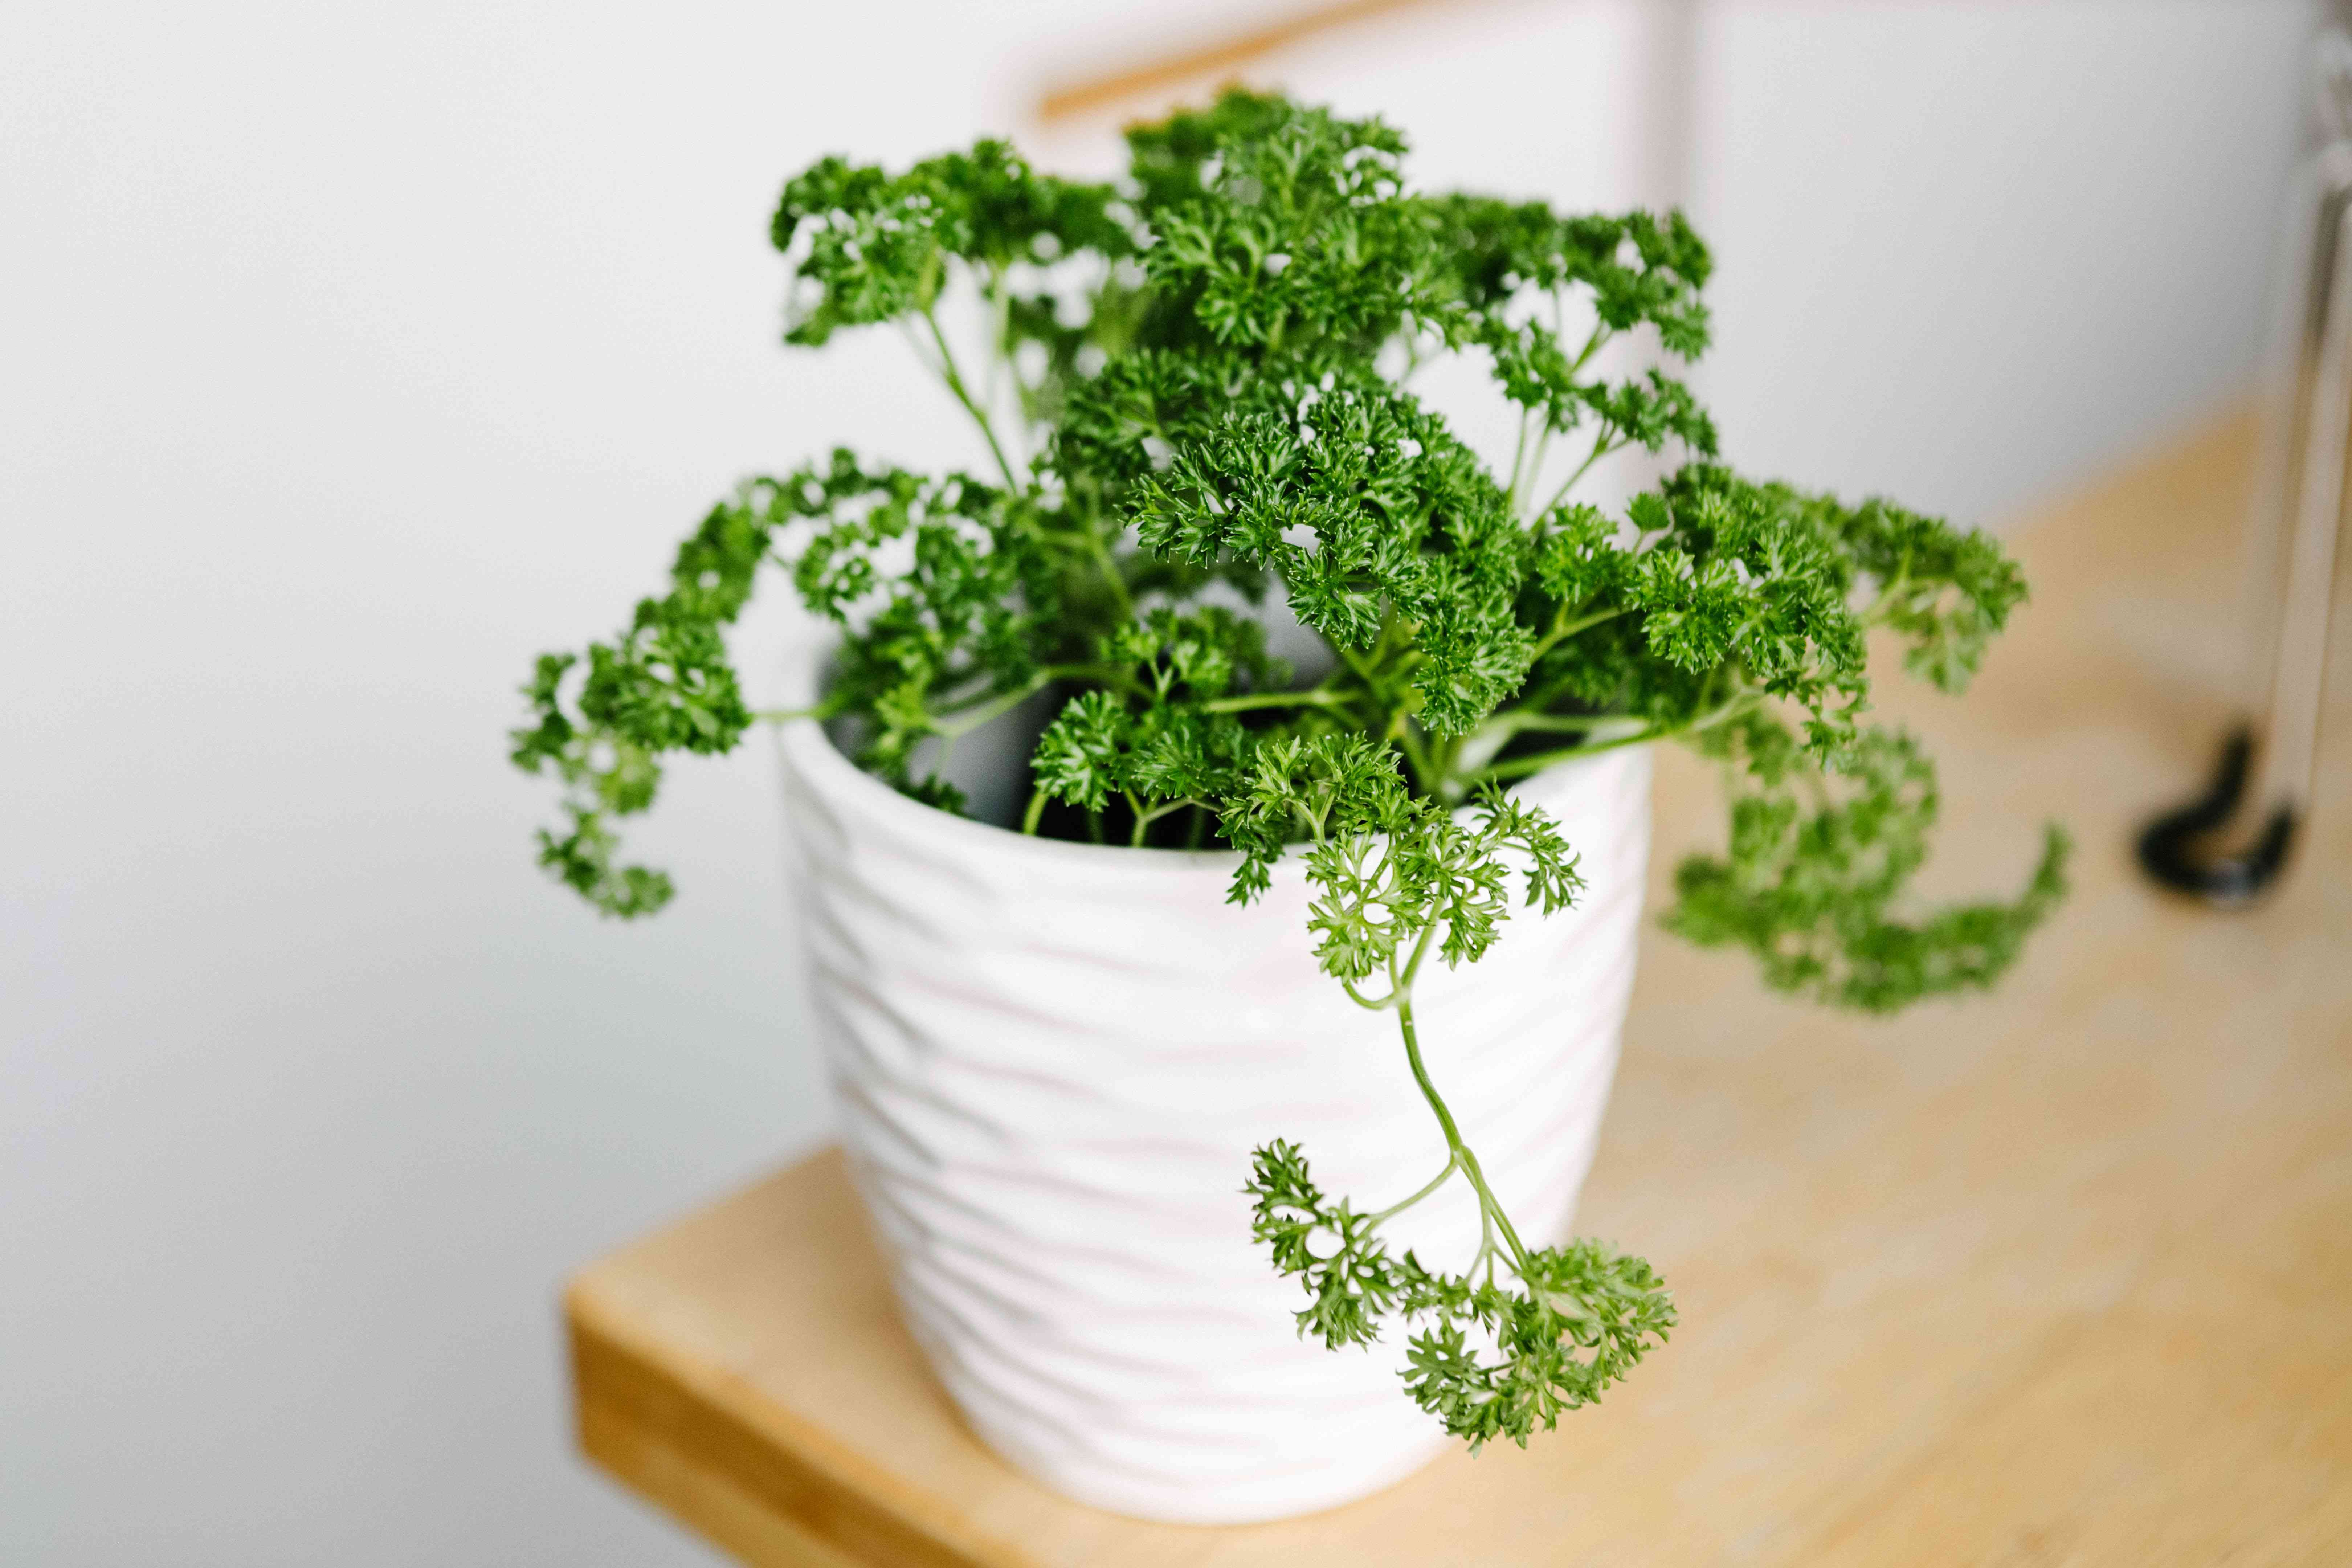 curly green parsley in white ridged planter pot on wooden table